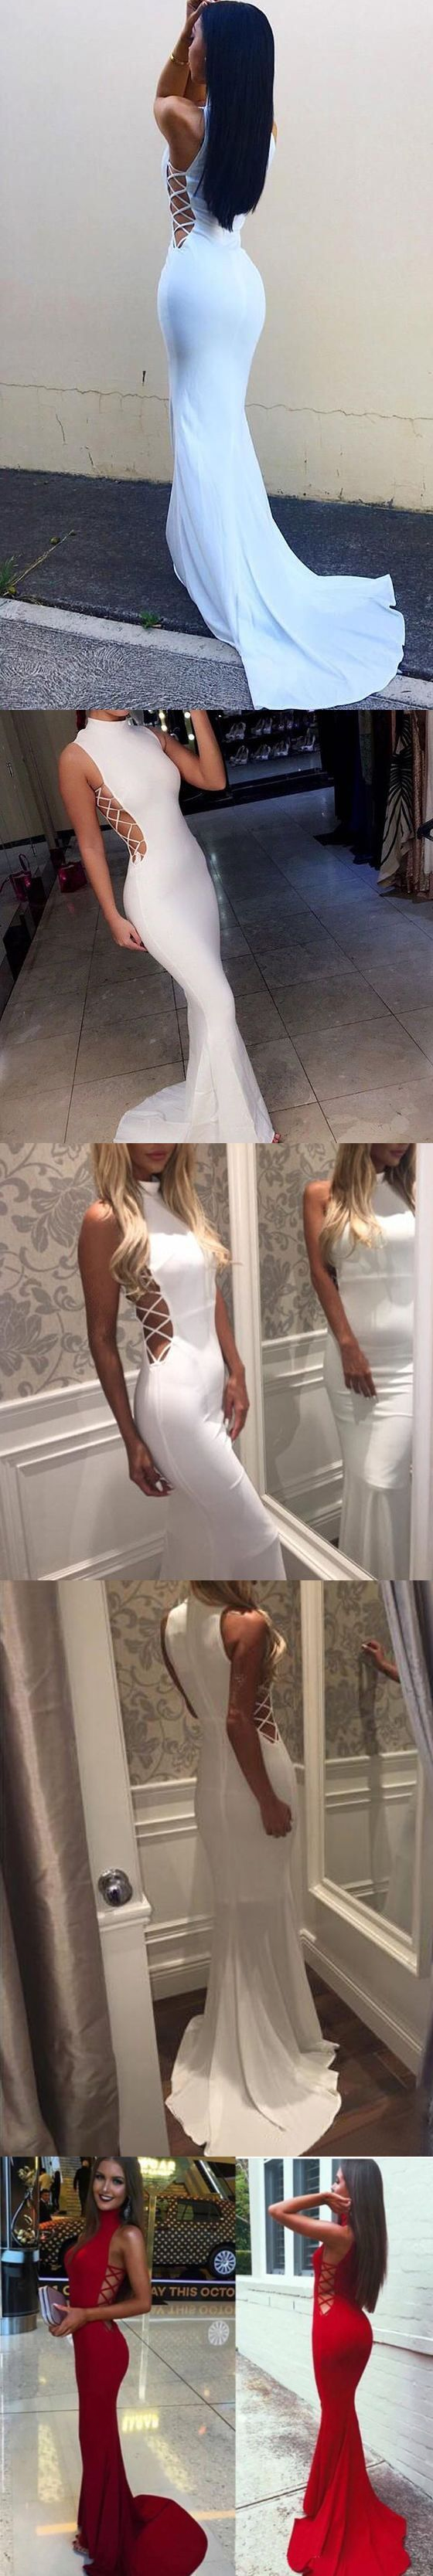 White Mermaid Prom Dresses,Simple Cheap Prom Dresses,Evening Dresses,High Neck Prom Dress,Sparkly Prom Dress,Evening Dresses